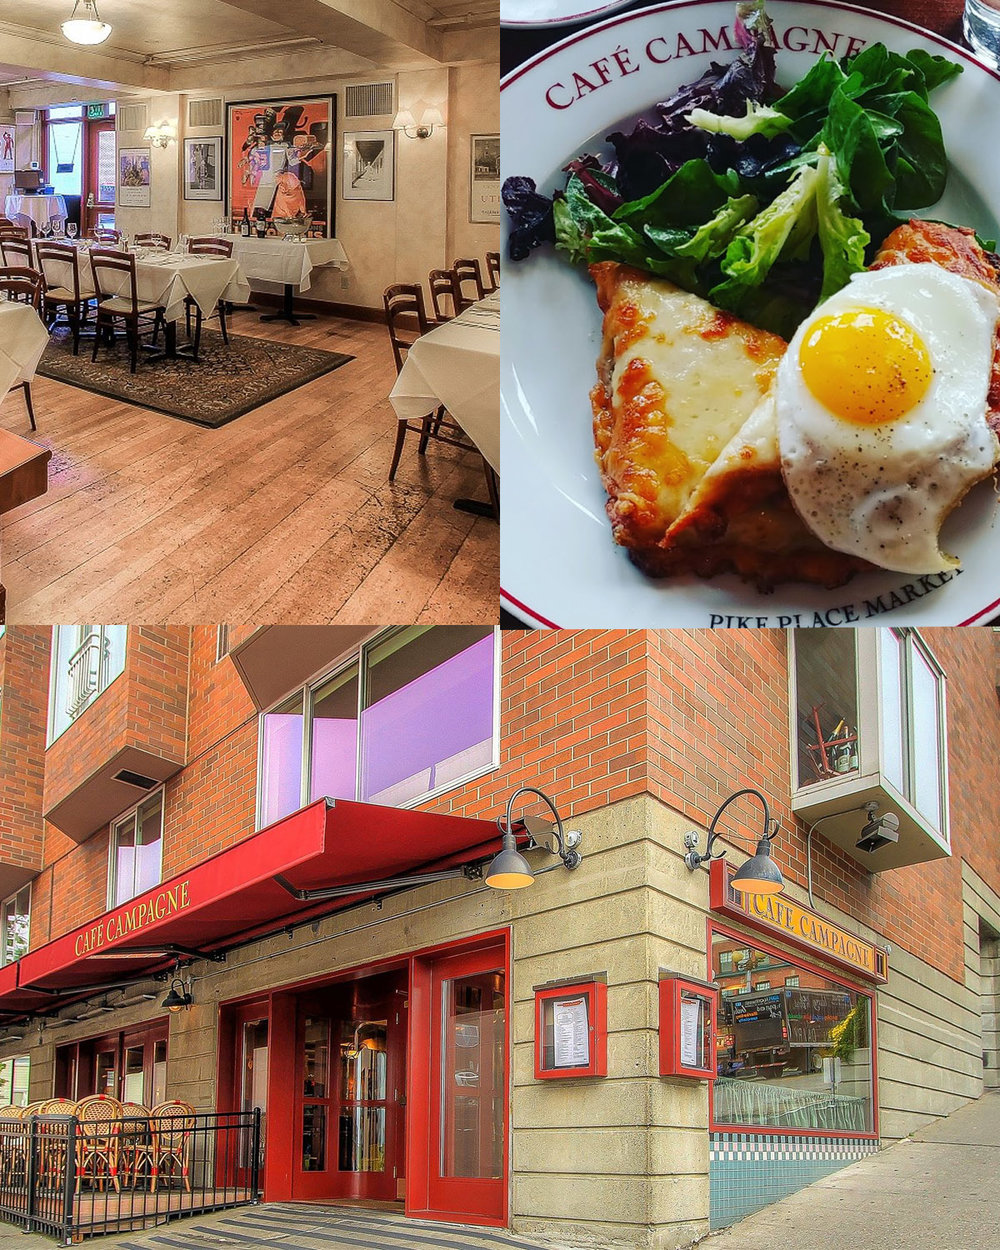 Cafe Campagne - The personality of Café Campagne has grown considerably. Initially intended to be the 'casual' eatery the vivacious and approachable Café is now a treasured culinary gem on its own.